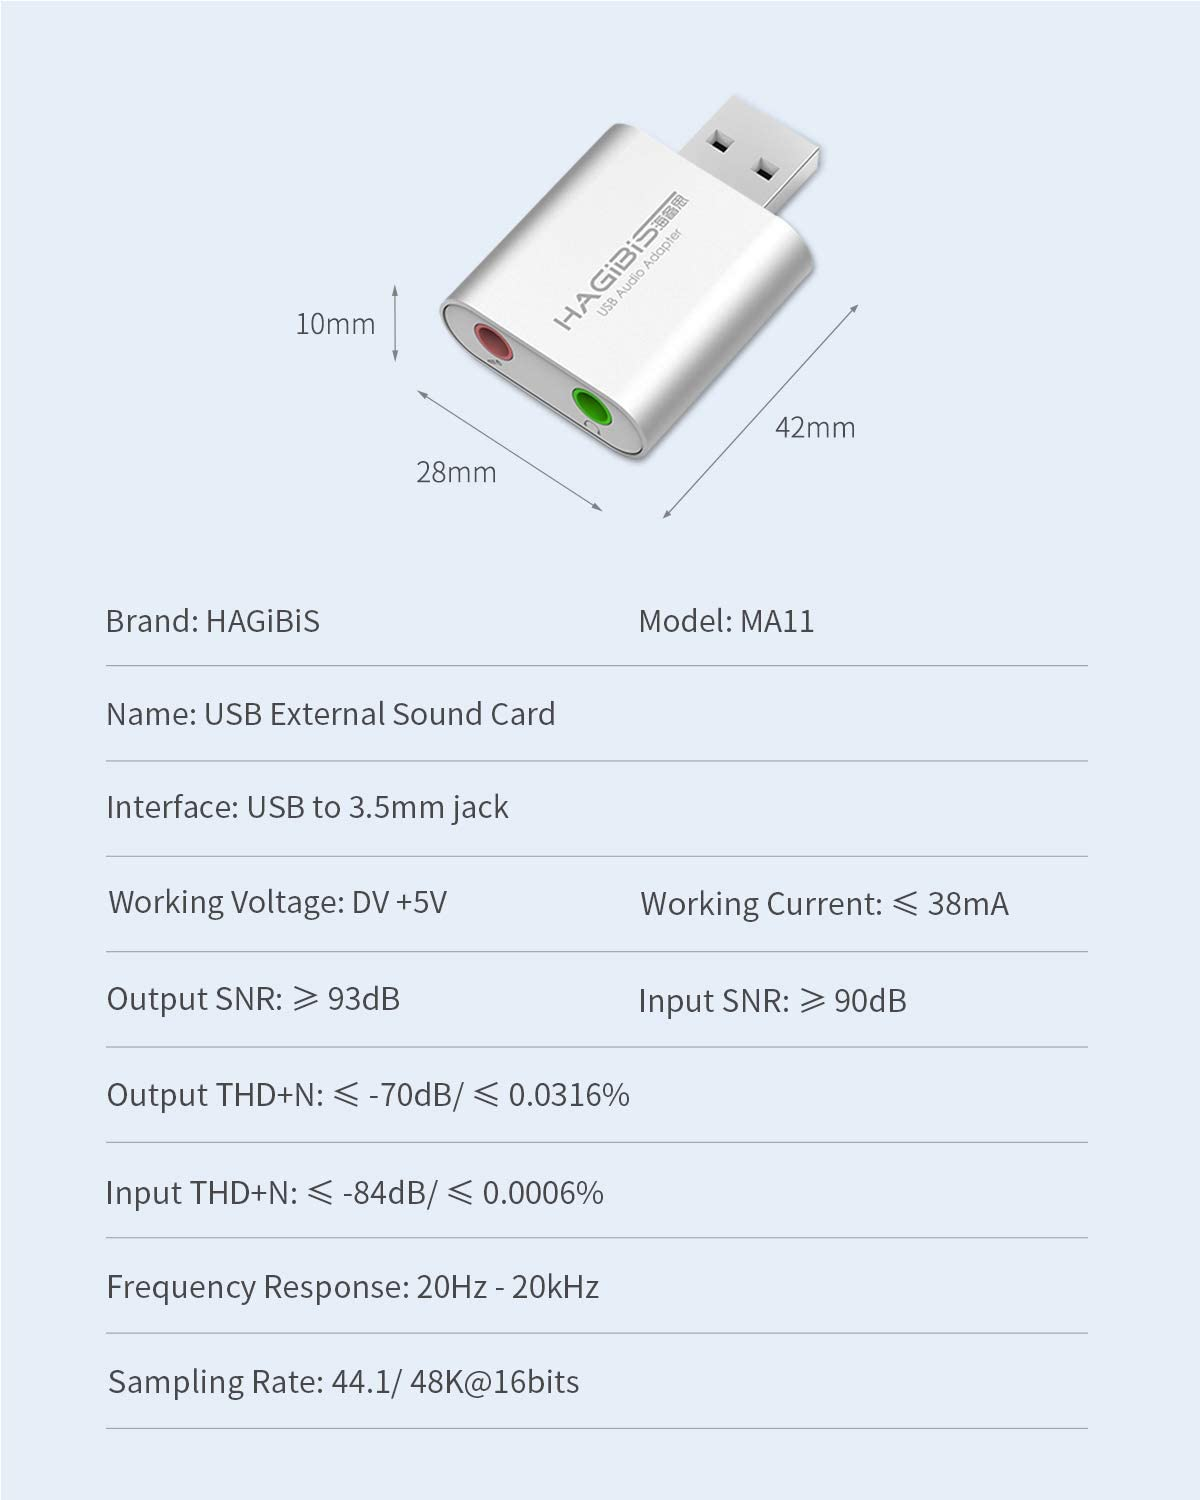 Hagibis USB External Sound Card Adapter 2 in 1 USB to 3.5mm Jack Headphone and Microphone Jack Audio Adapter Mic Stereo Sound Card for Windows, Mac, Linux, PC, Laptops, Desktops, PS4,PS5 (White)